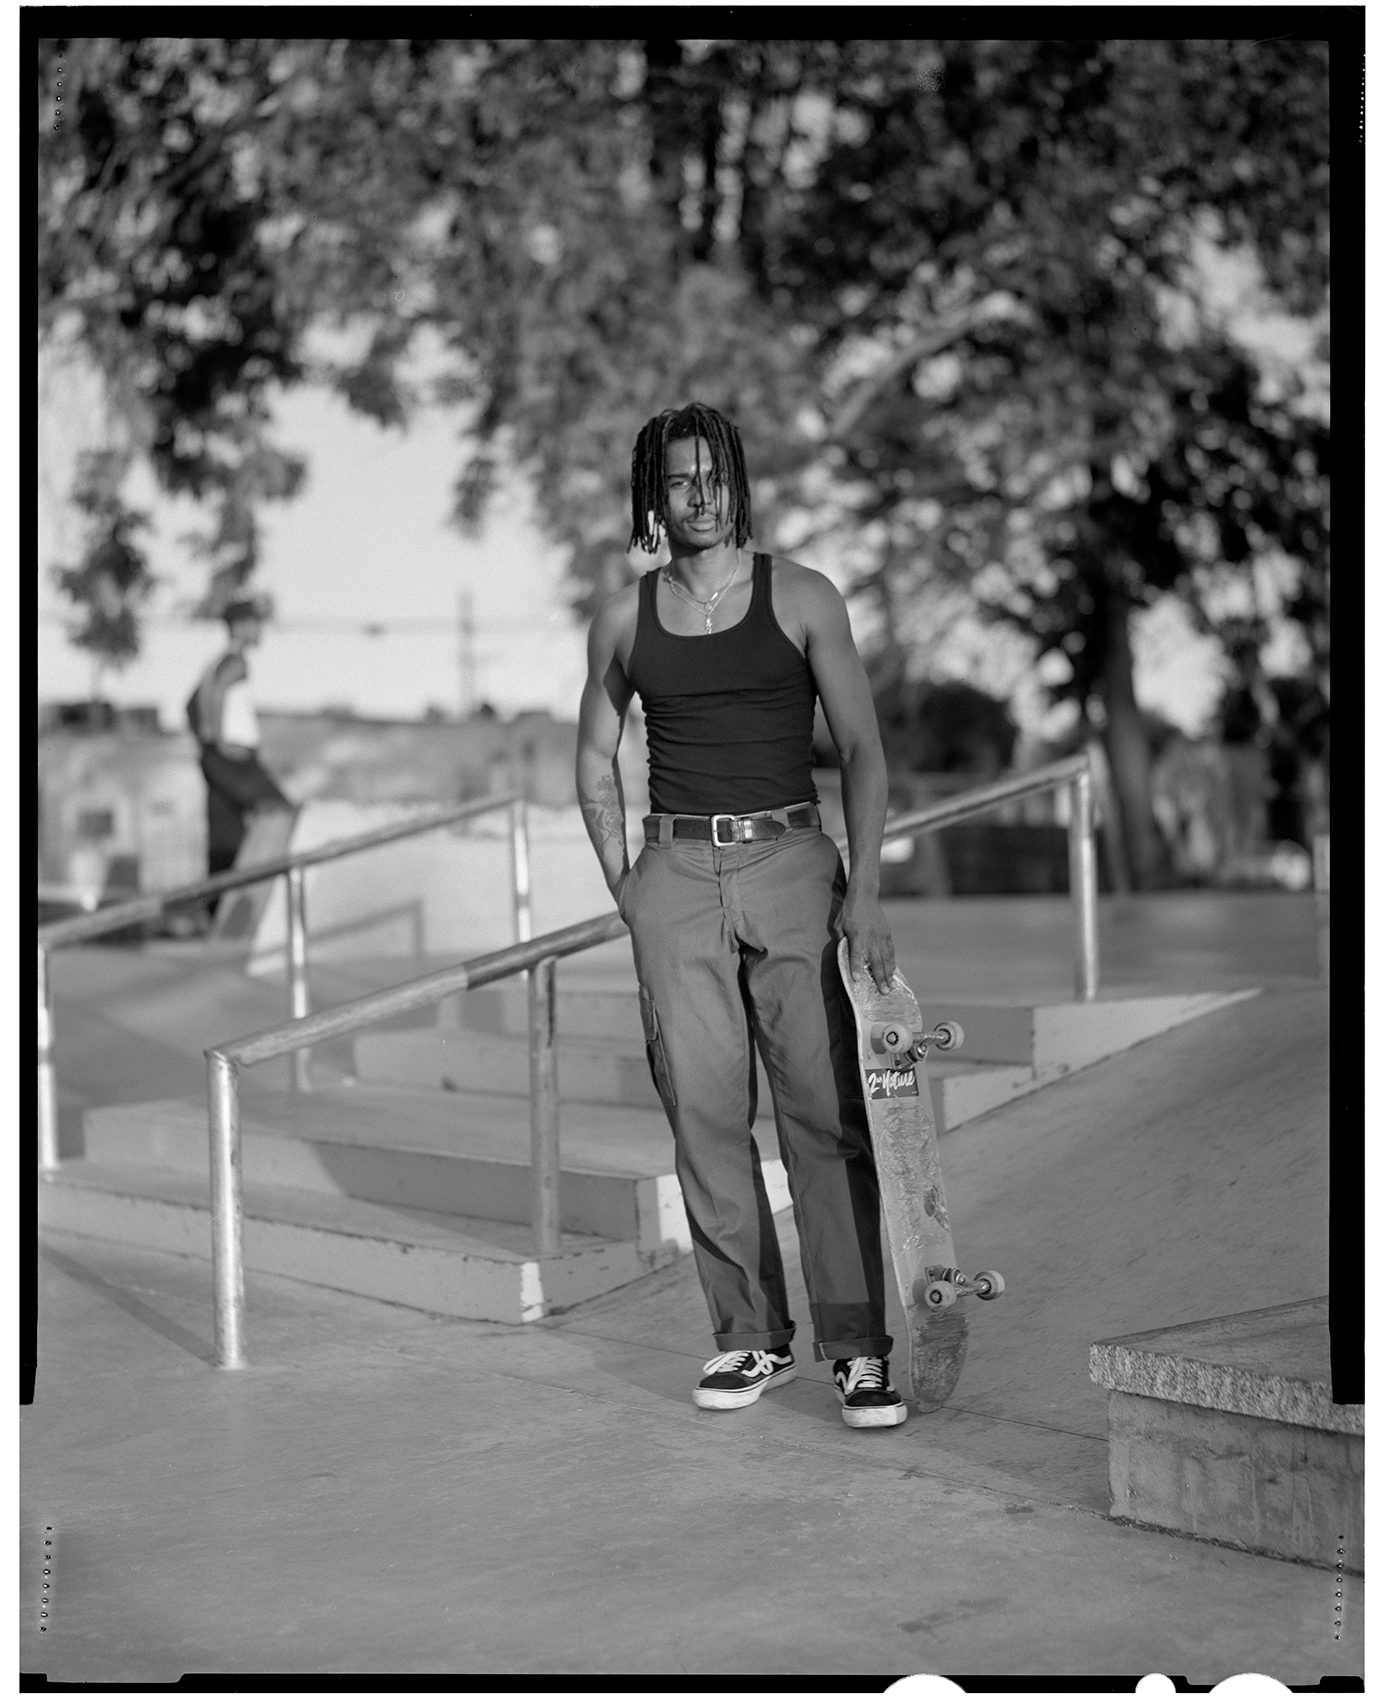 20200428_atwater-skate-park-superD-6.6-WEB